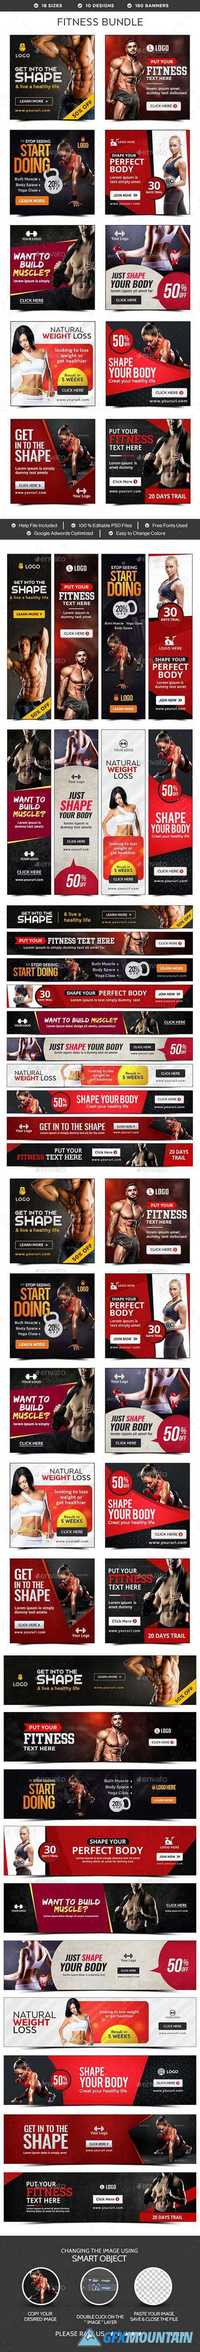 Graphicriver Fitness Banners Bundle - 10 Sets - 180 Banners 19460040